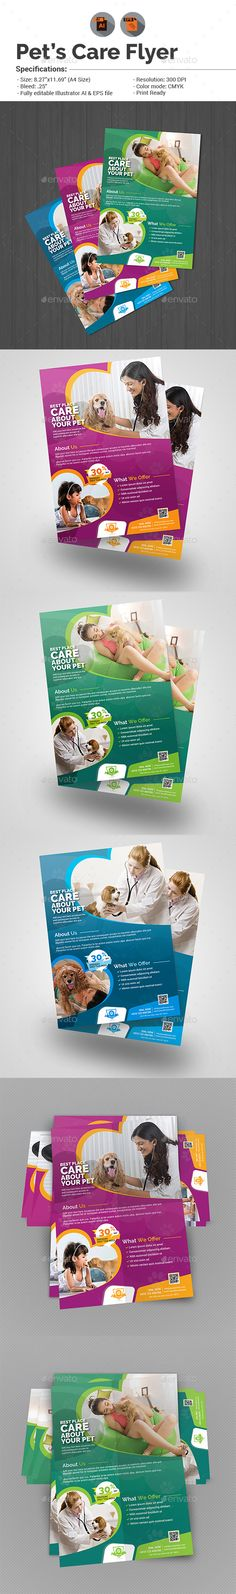 Pet Care Flyer Template  — EPS Template #veterinarians #health • Download ➝ https://graphicriver.net/item/pet-care-flyer-template/18380579?ref=pxcr